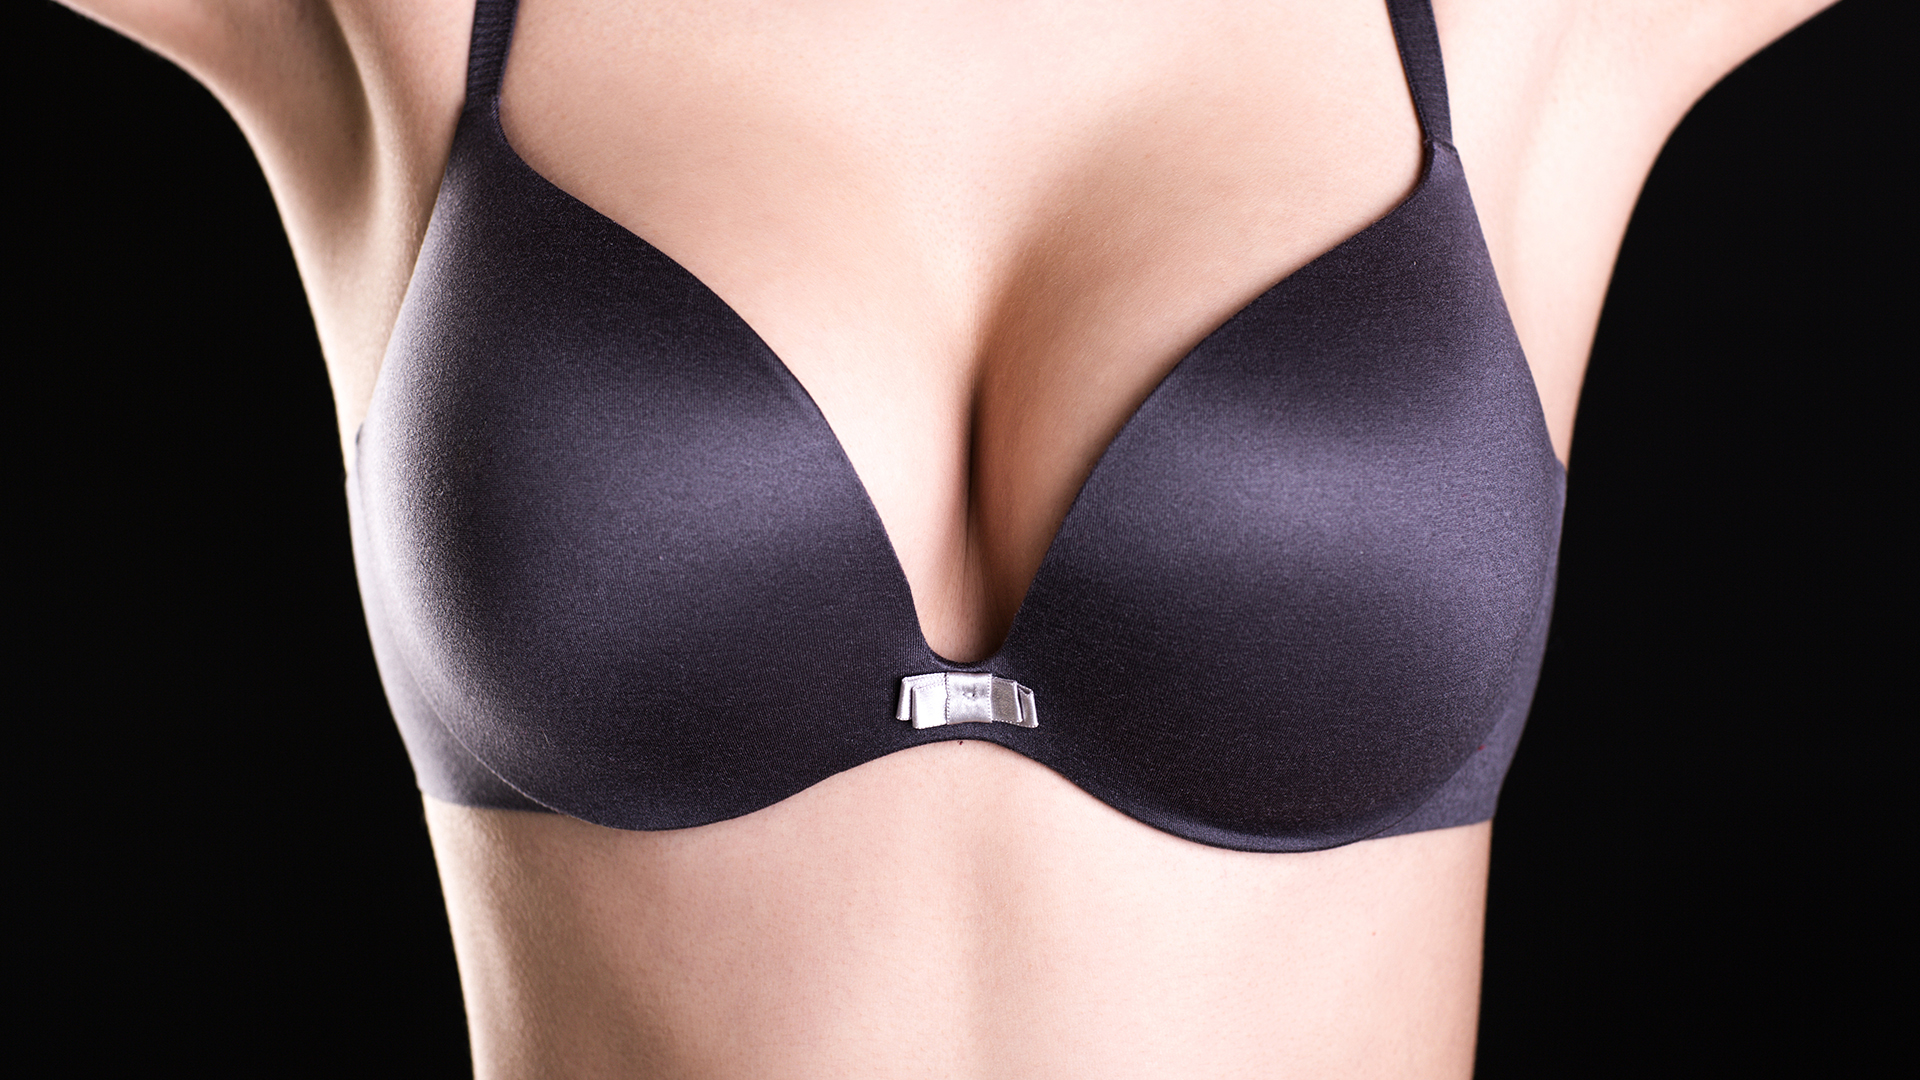 More women are having their breast implants removed or \'downsized\'